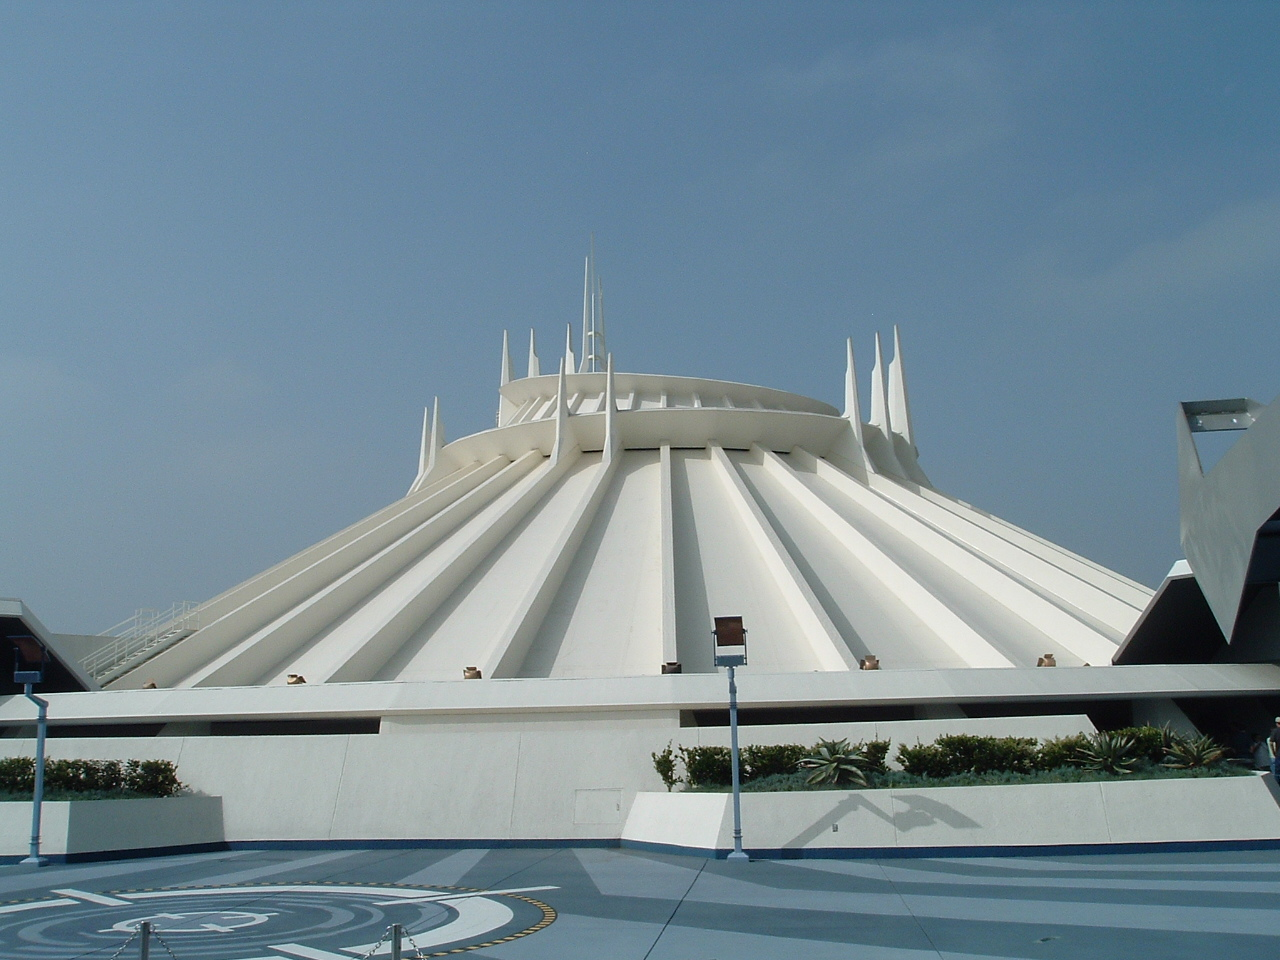 Space Mountain Disneyland Wikipedia